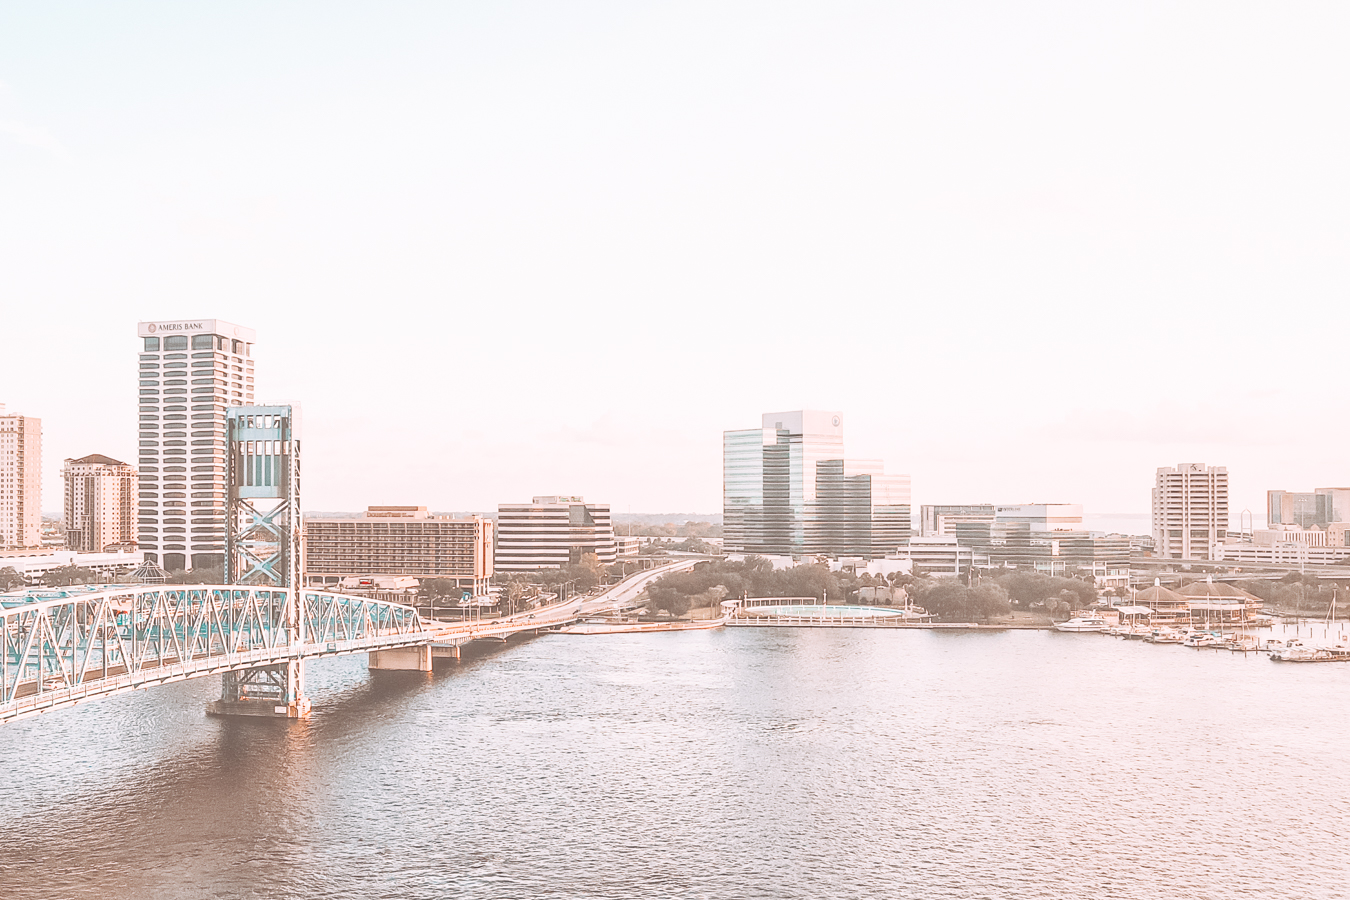 A view of water, a bridge, and buildings in Jacksonville